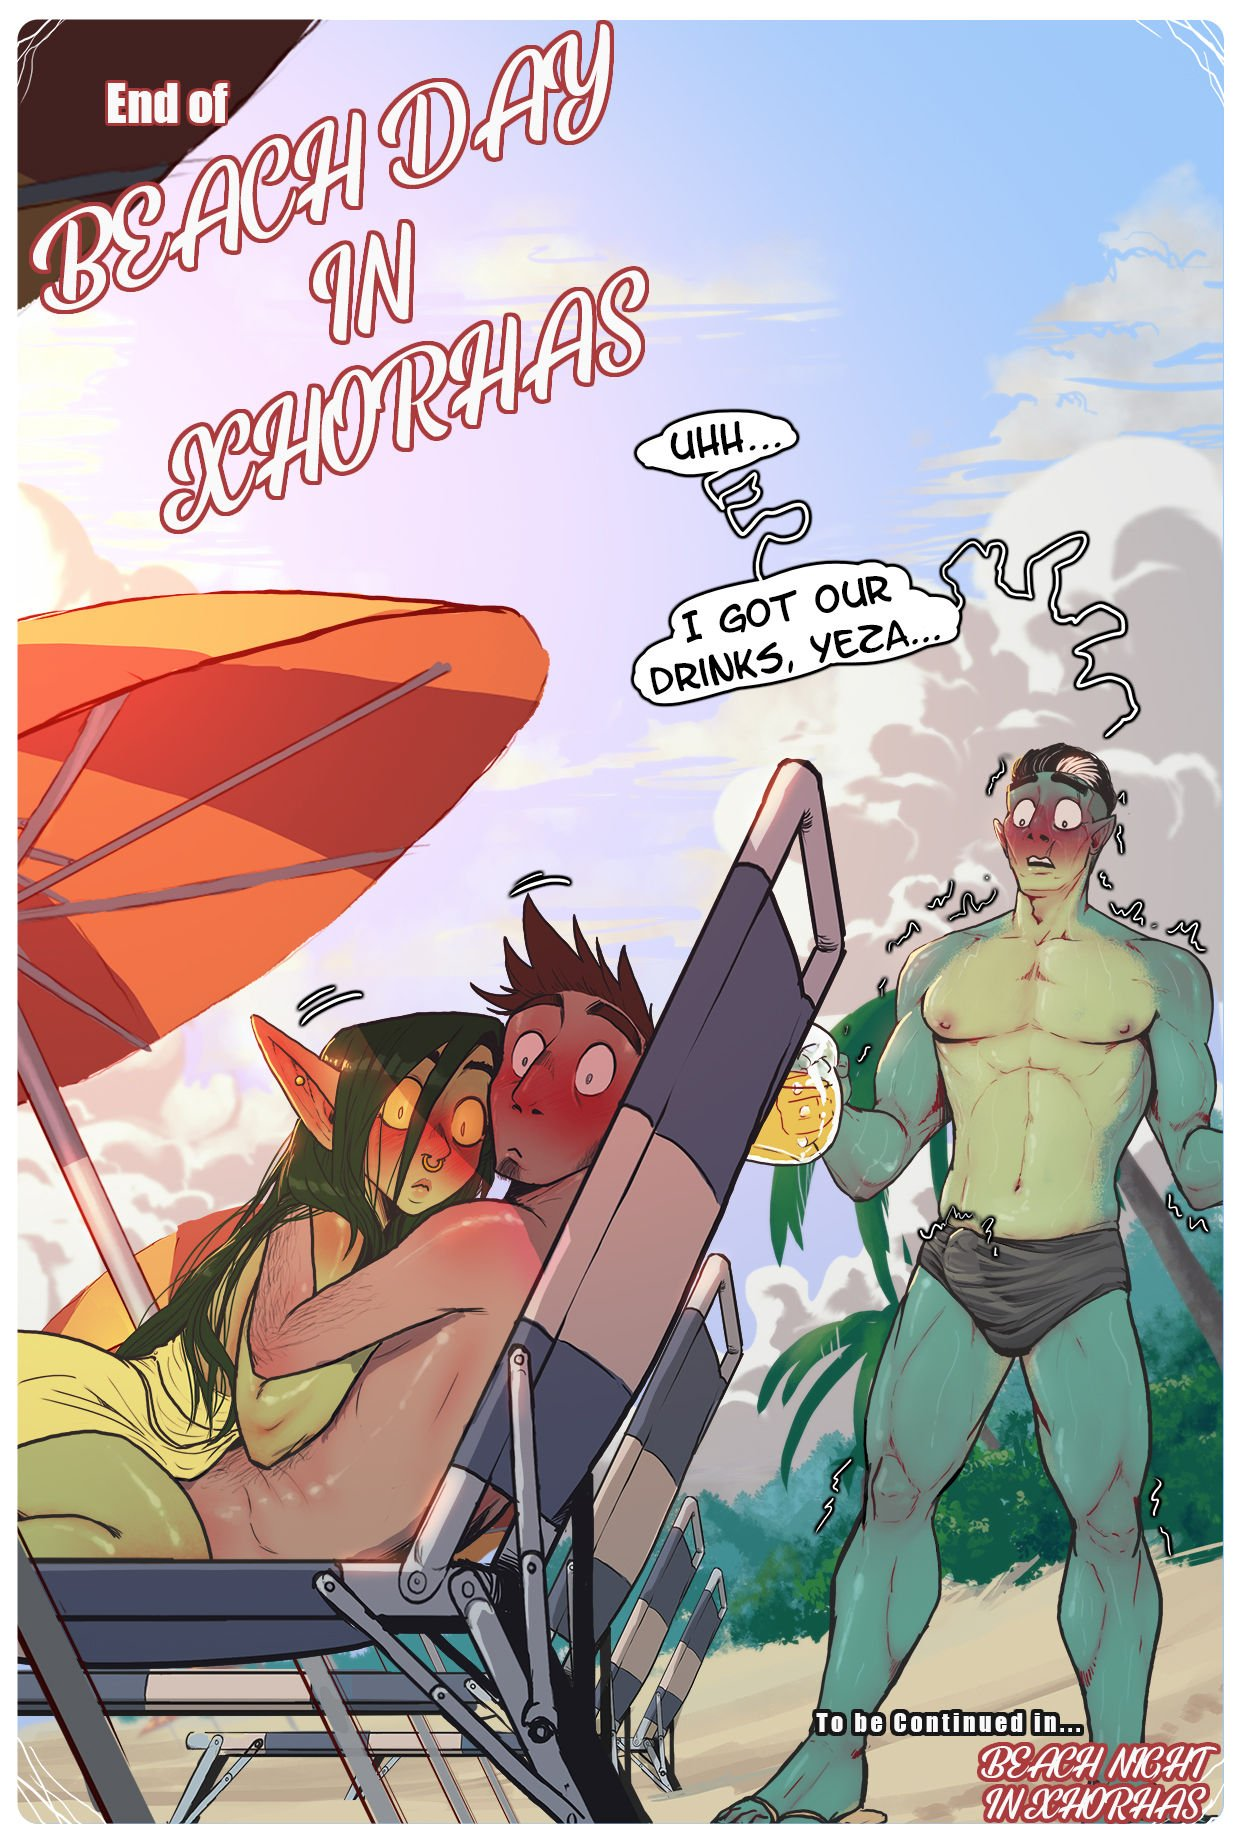 Nott The Thicc – Beach Day In Xhorhas 30